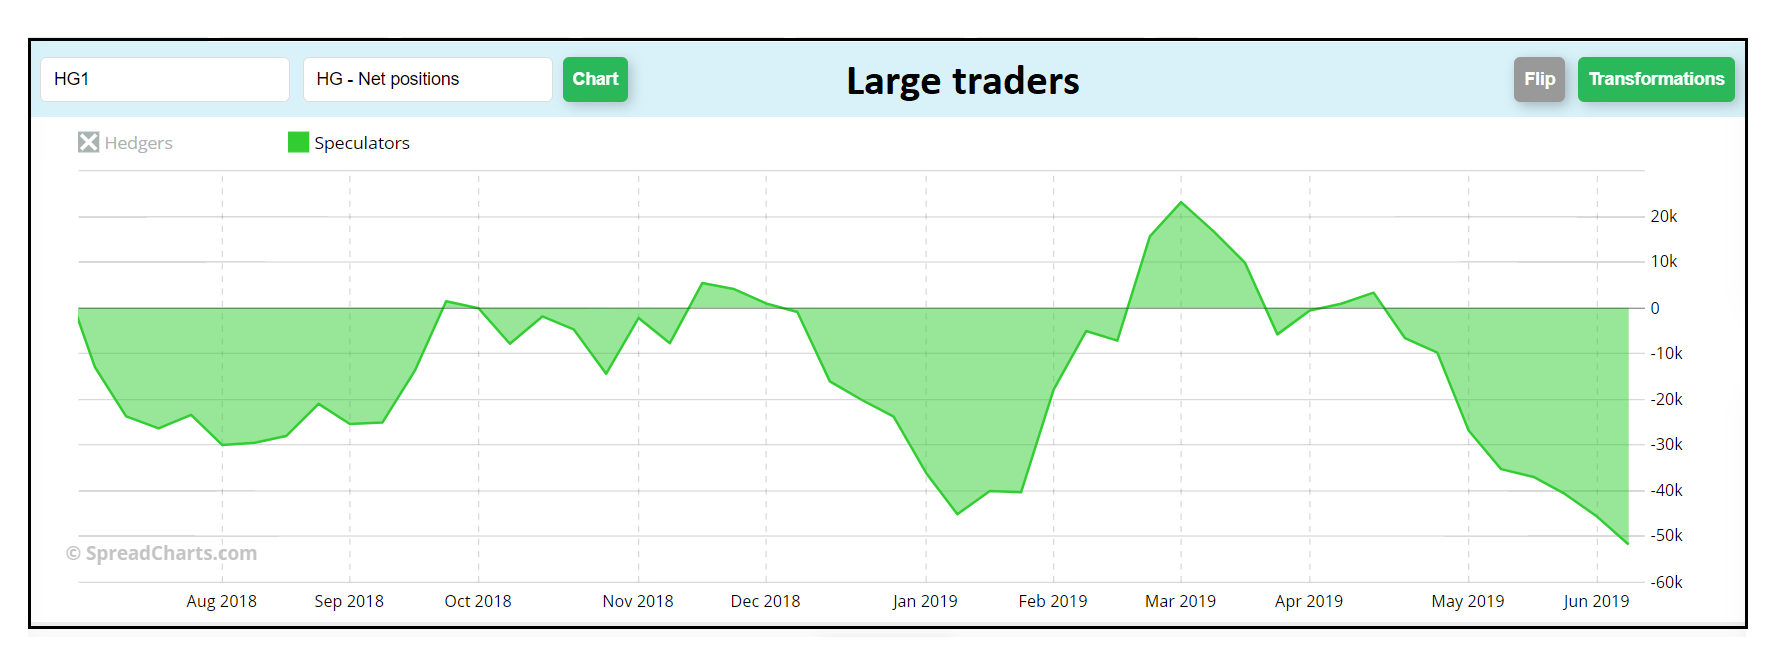 Large traders